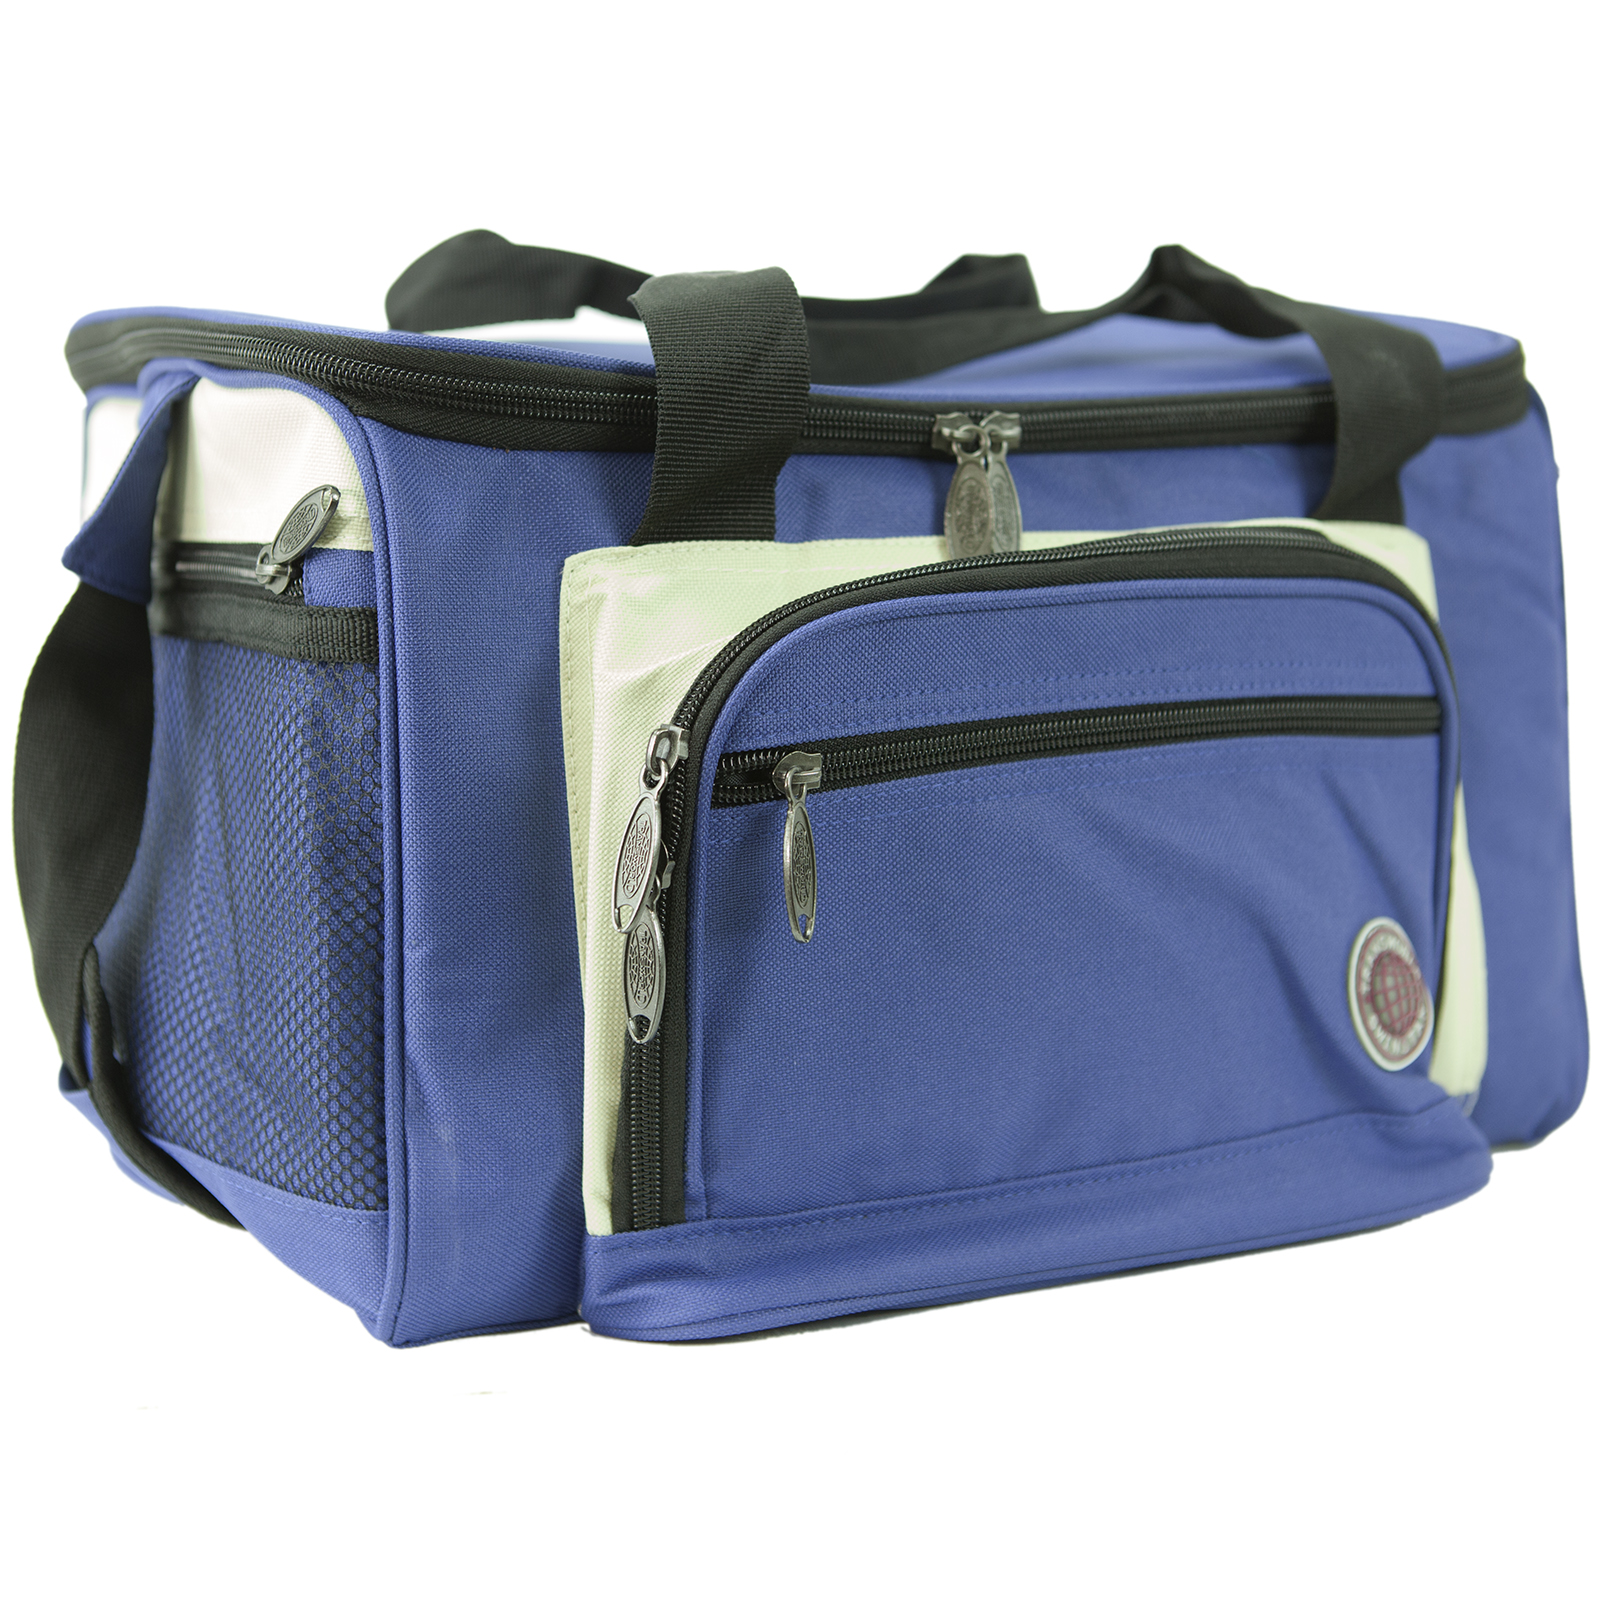 Insulated Lunch Bag Cooler Multiple Pockets Shoulder Strap Large Tailgating Tote